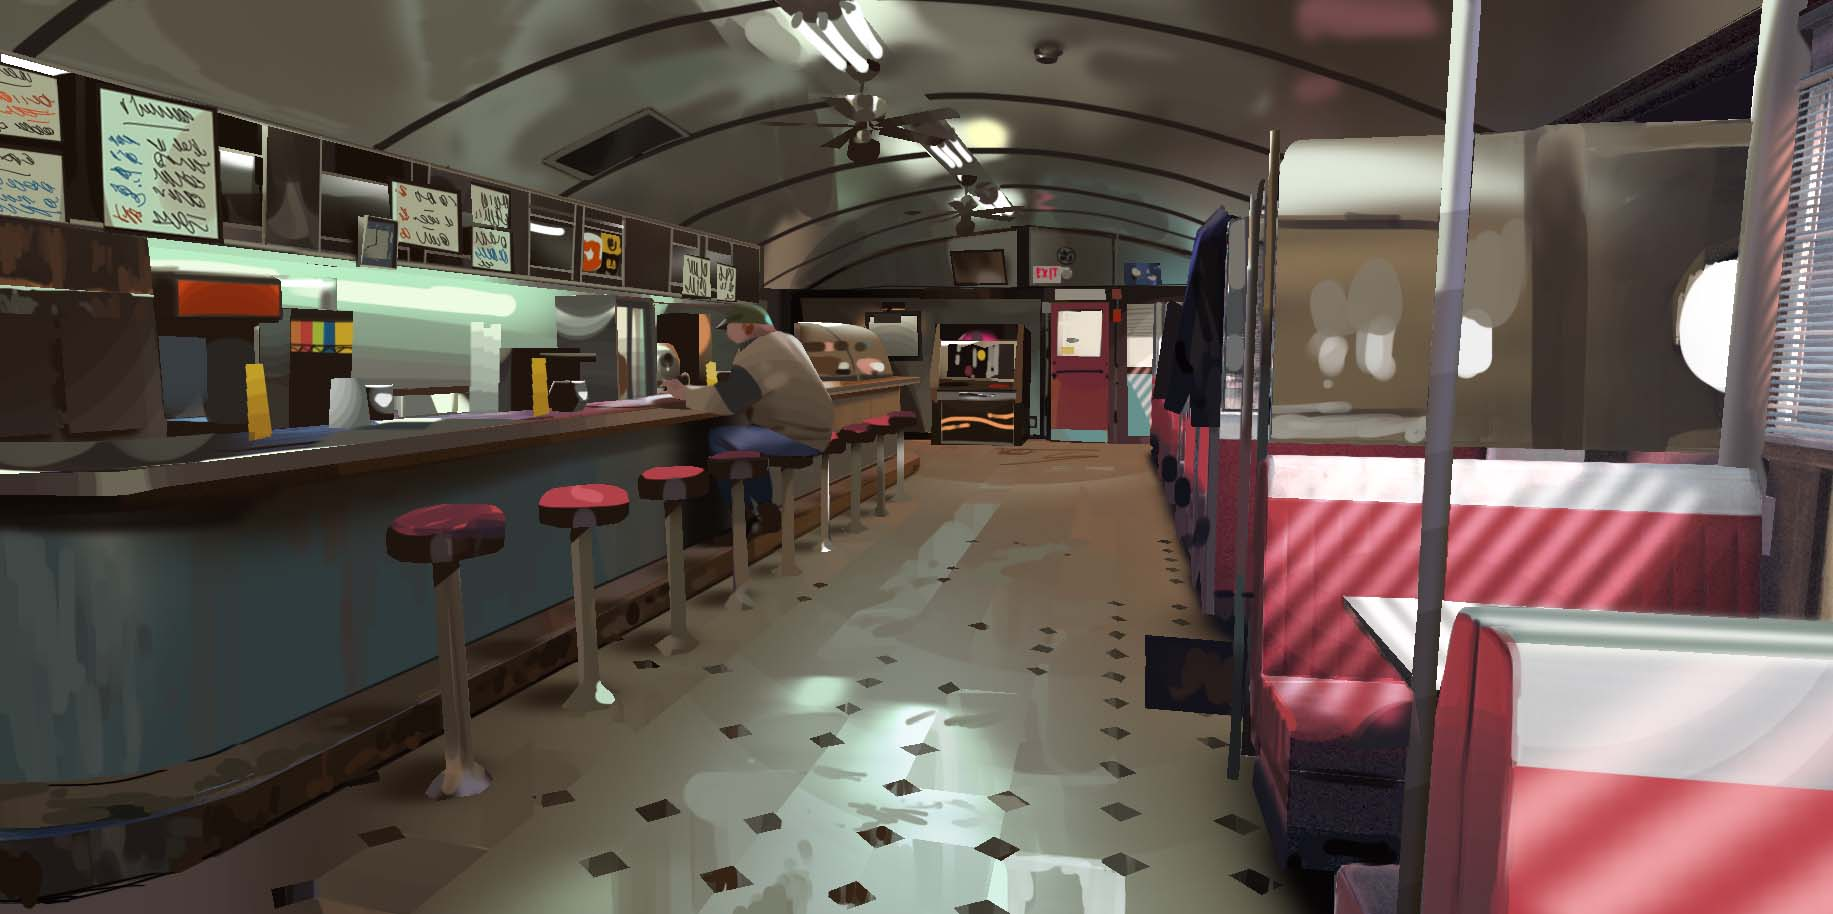 The diner. (Image courtesy of Square Enix.)